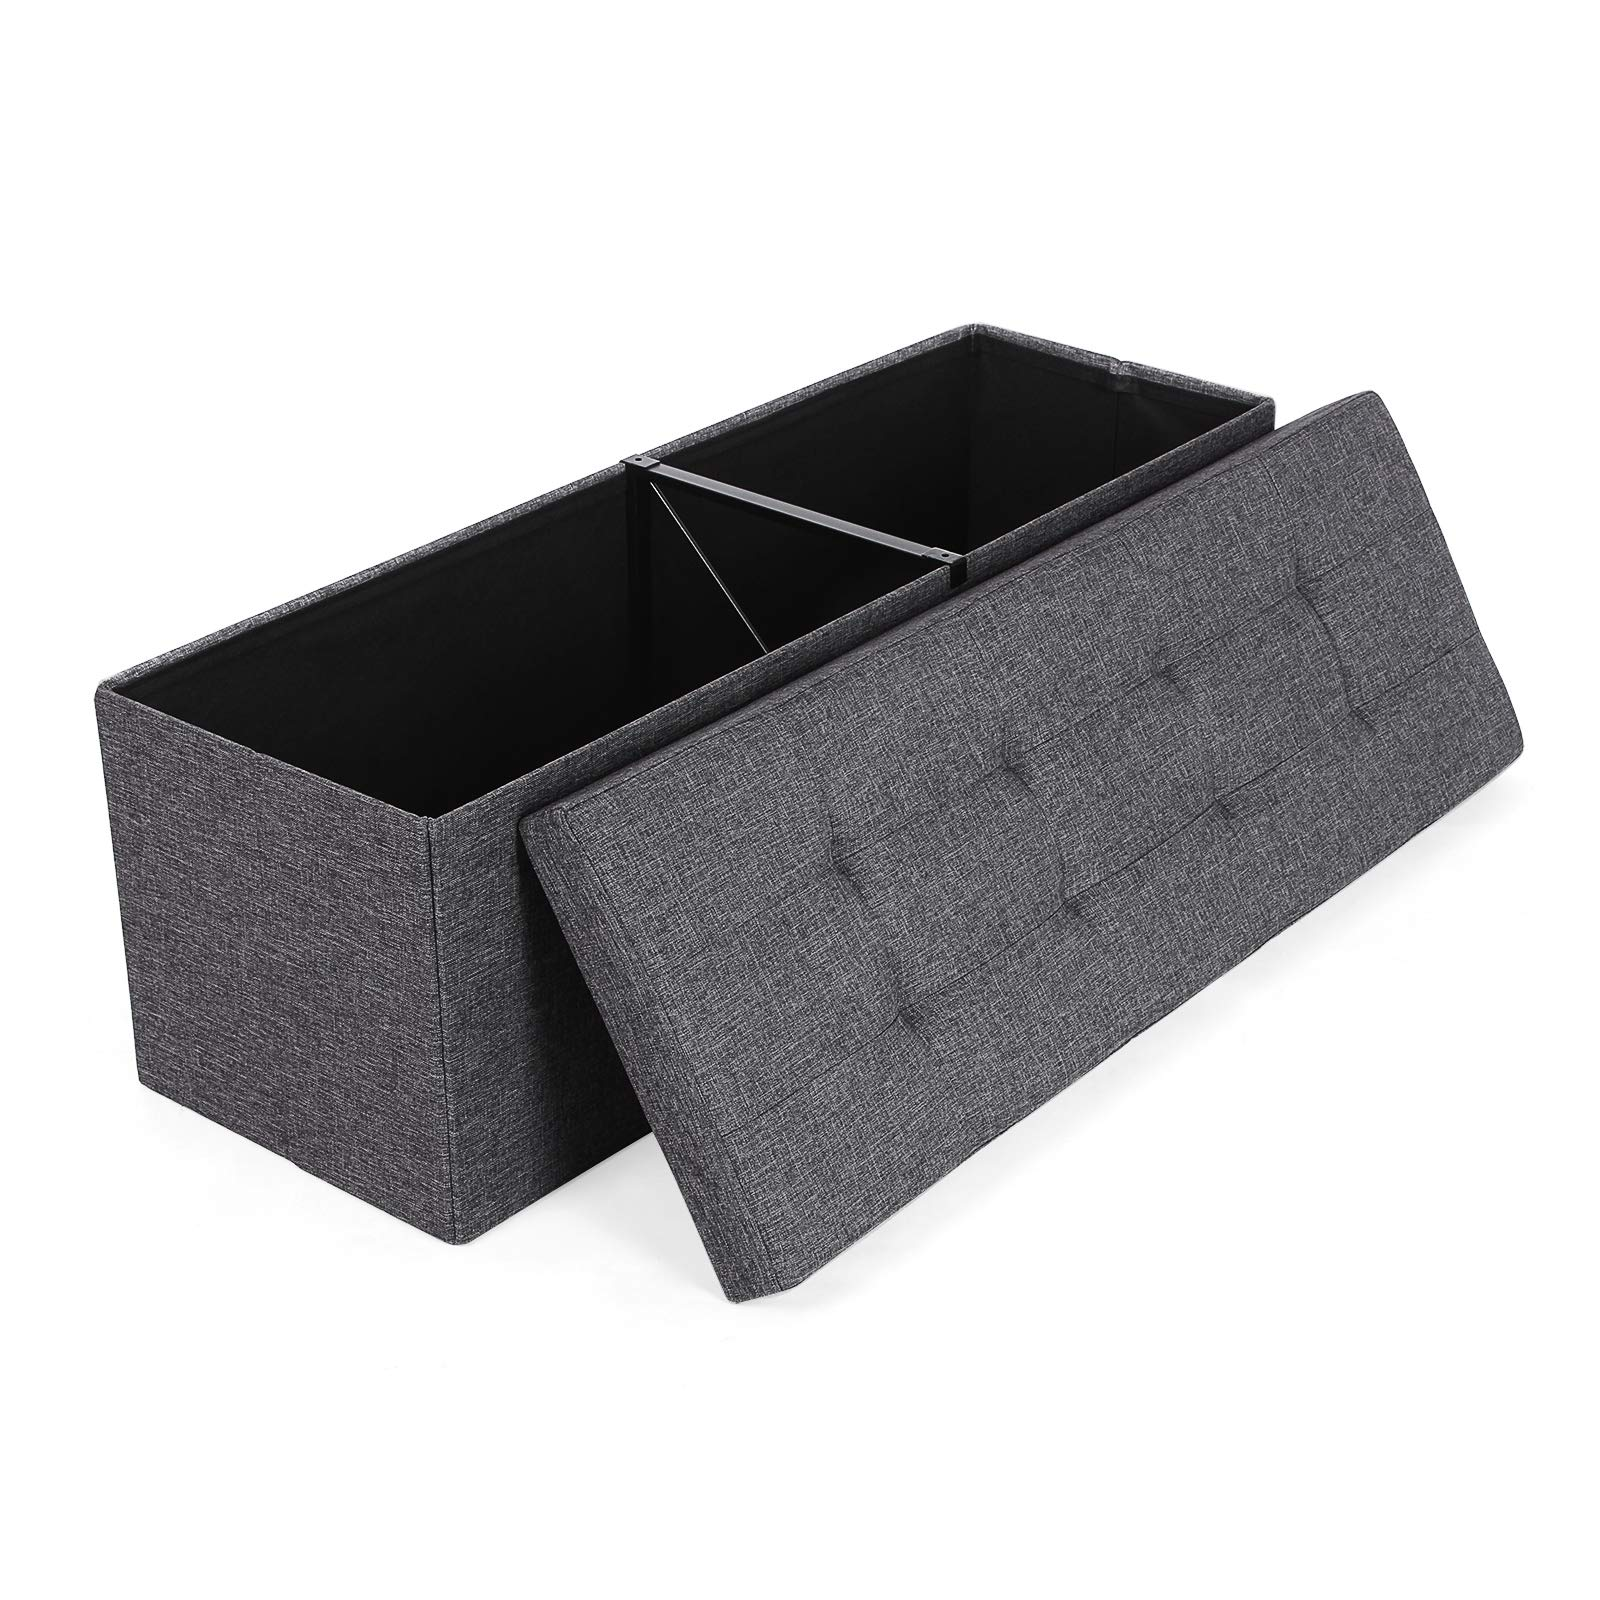 SONGMICS Folding Storage Ottoman Bench Storage Chest Foot Rest Stool with Metal Support, Holds up to 660lb, Dark Gray ULSF77K by SONGMICS